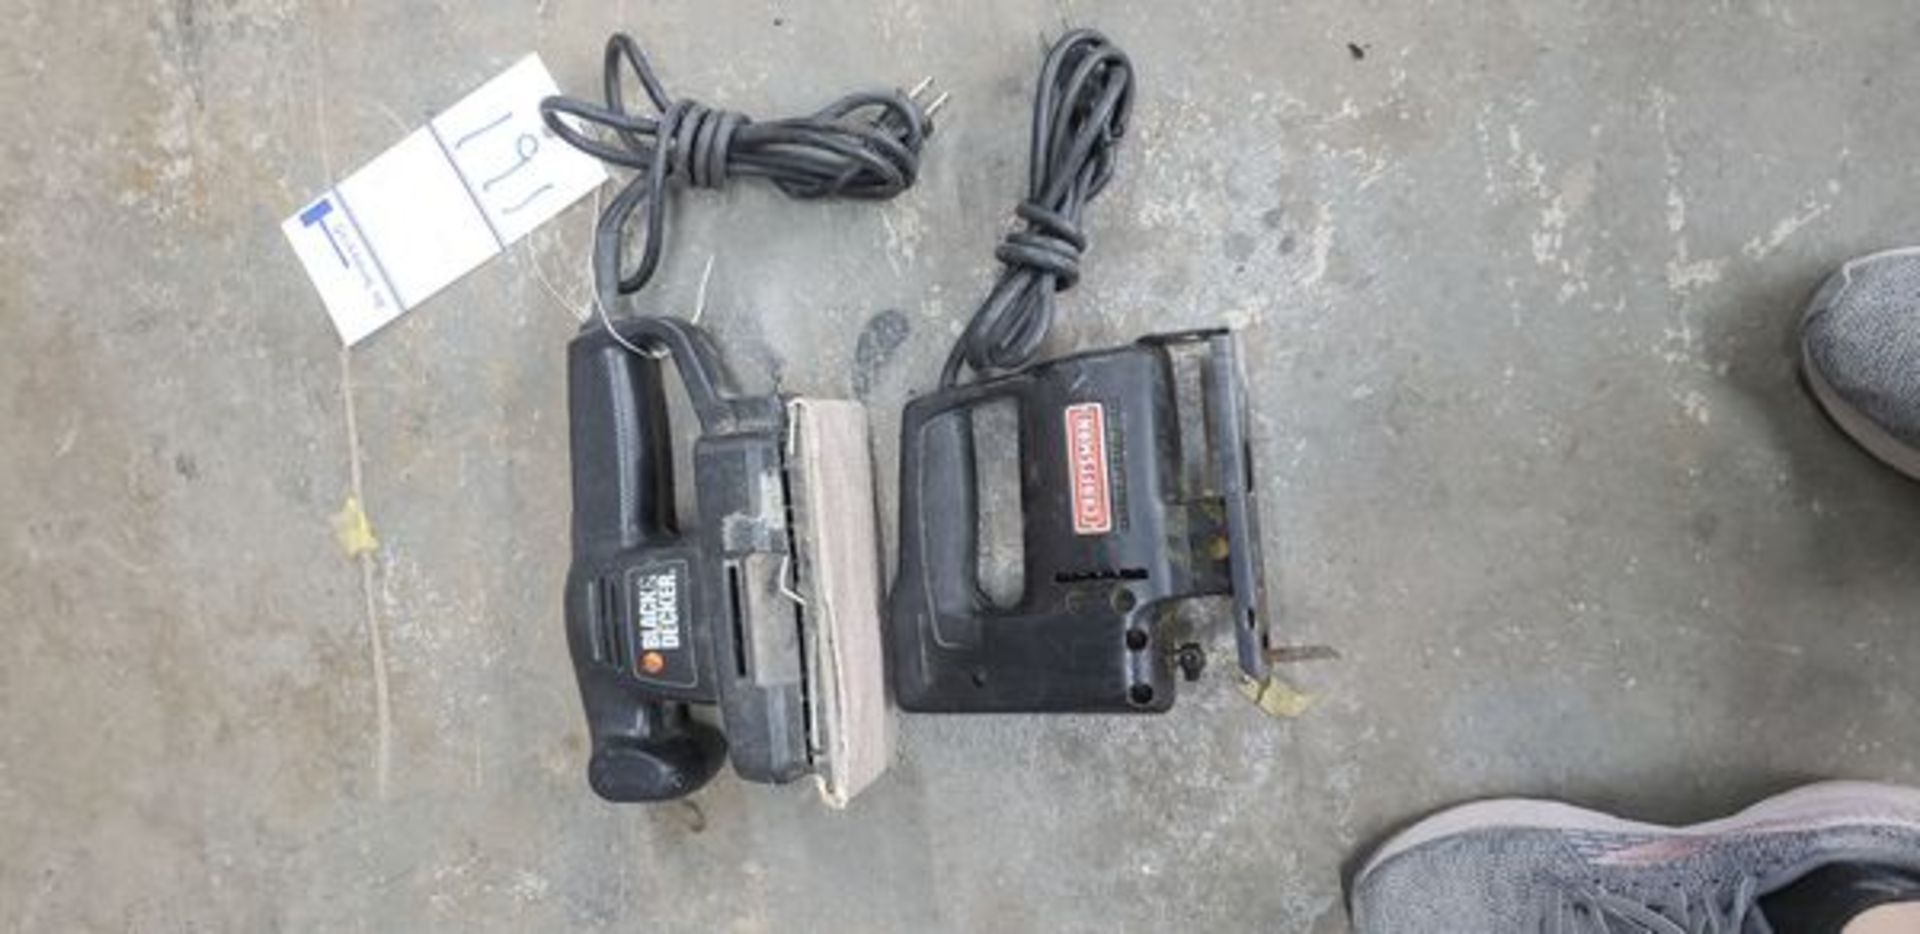 ELECTRIC SANDER AND JIG SAW